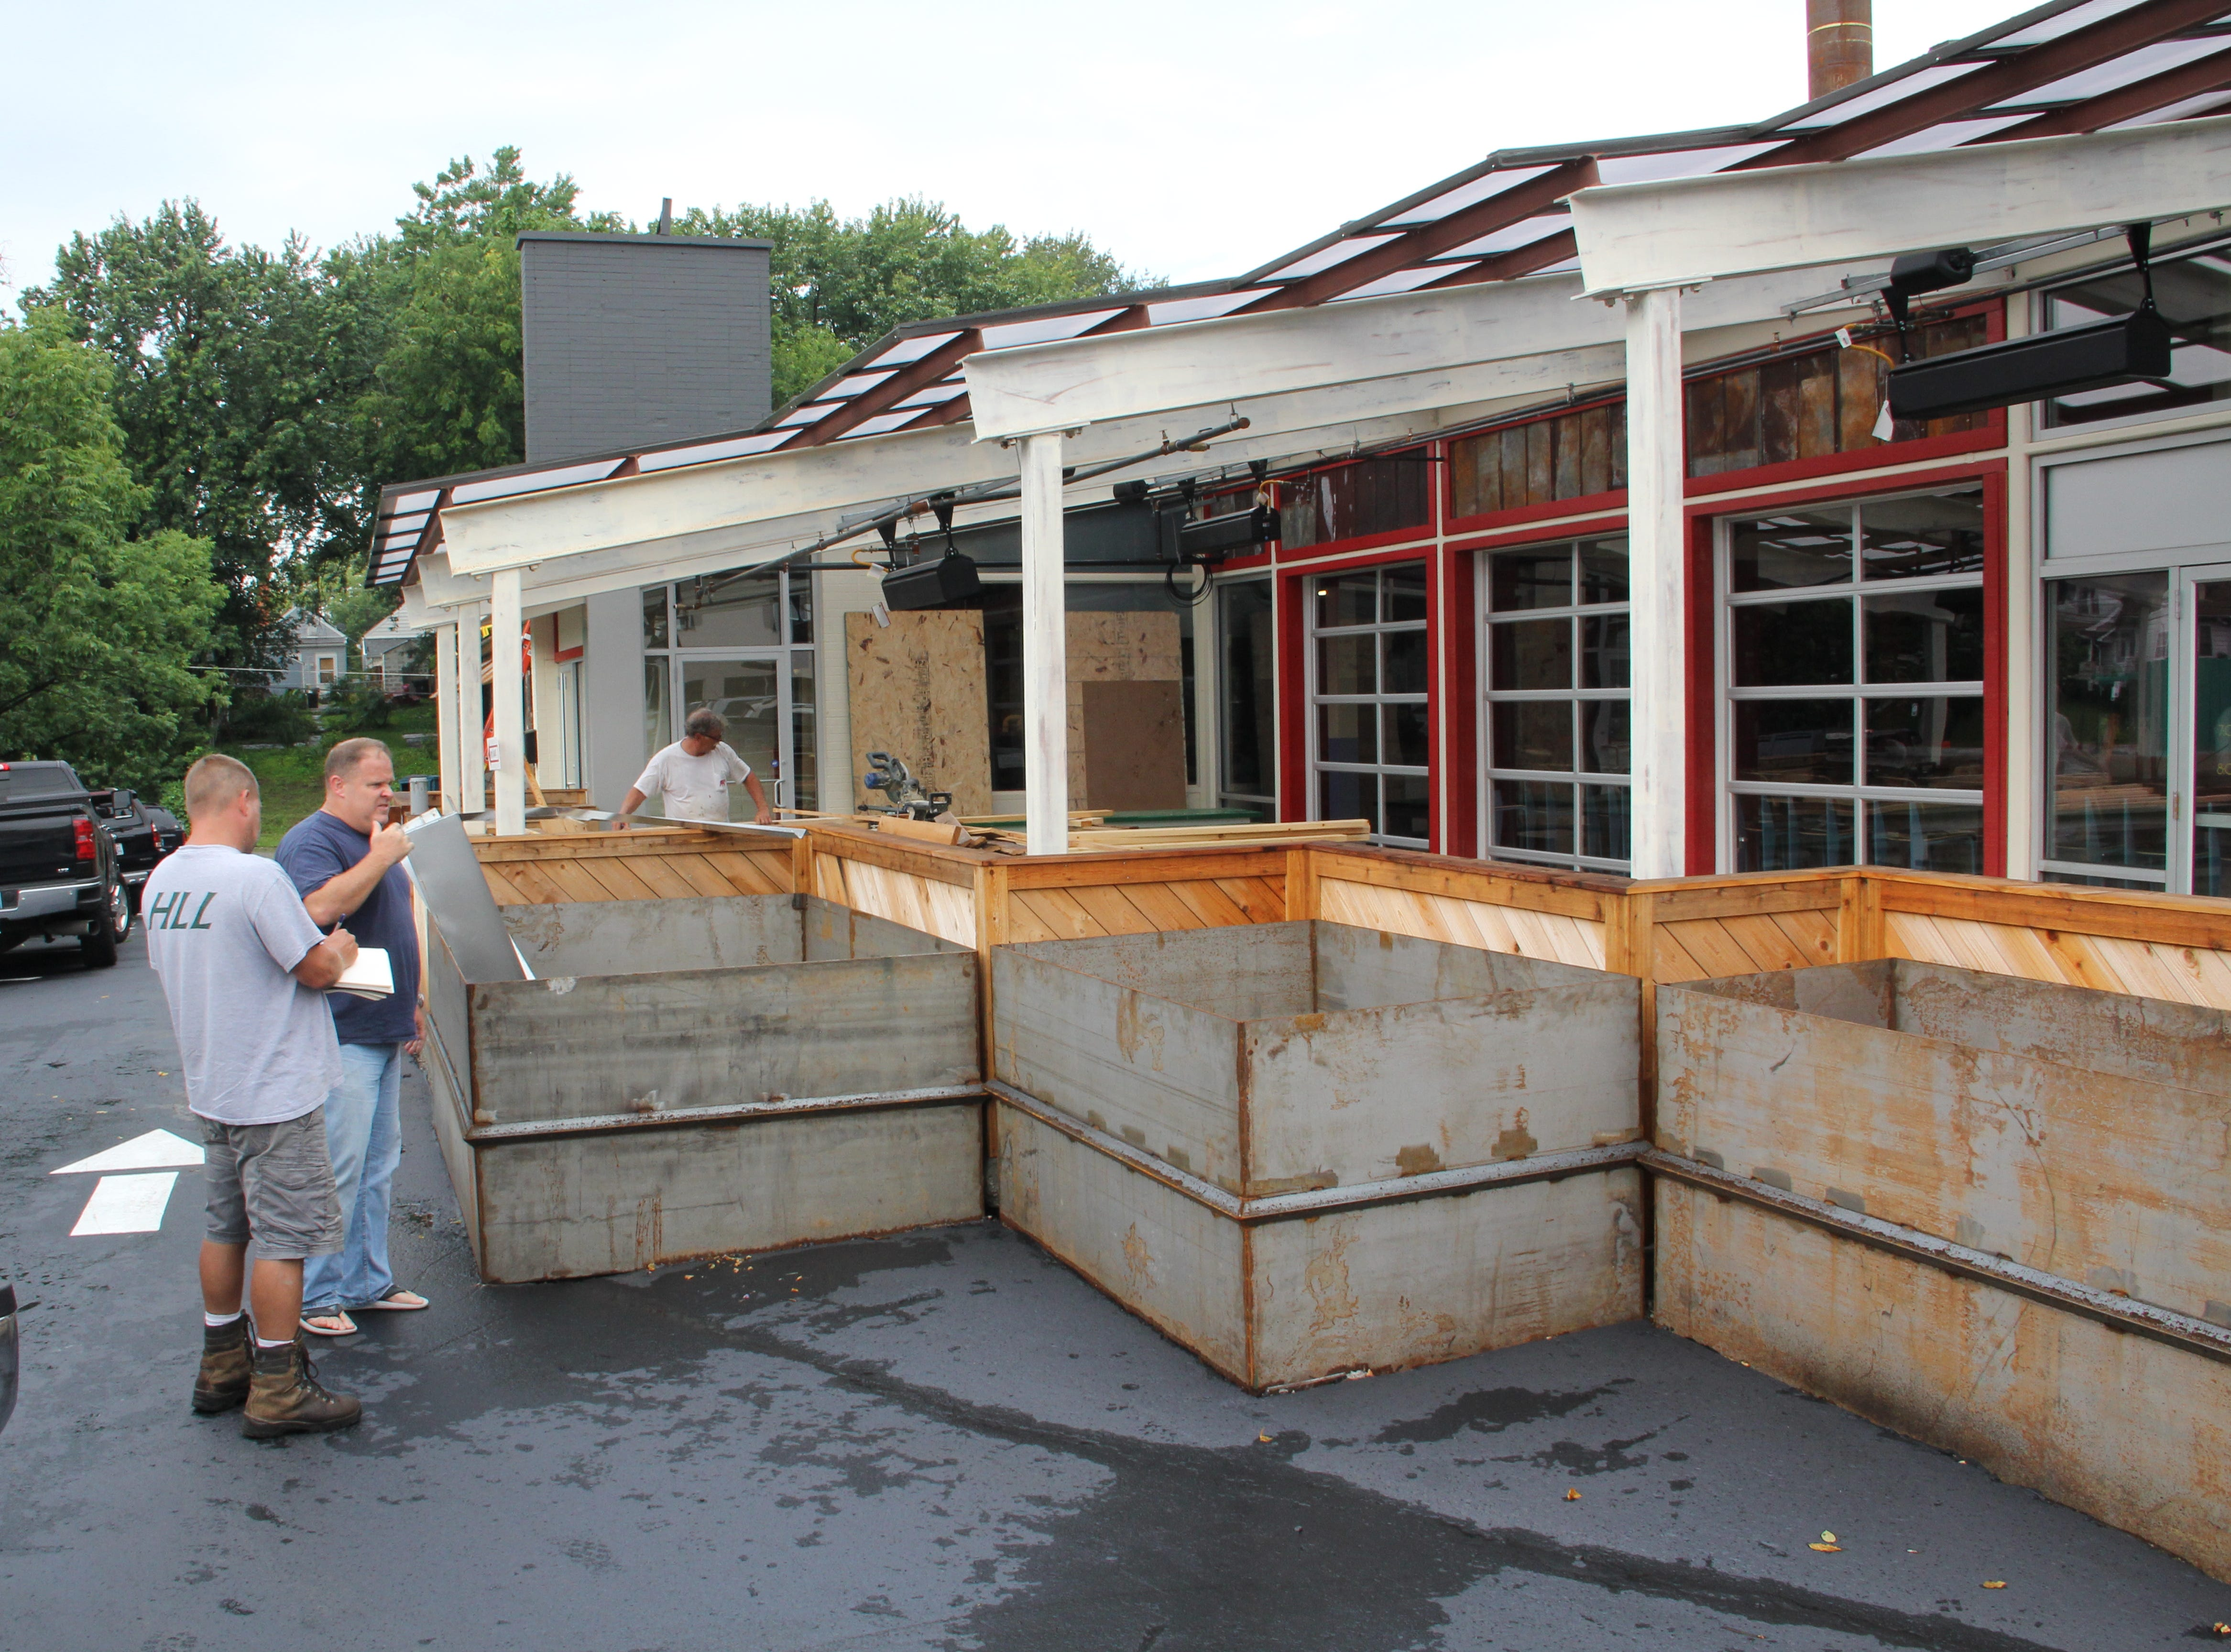 Pat Martin opened his first Martin's Bar-B-Que Joint in 2006. This is the sixth location, and the second one for Louisville.